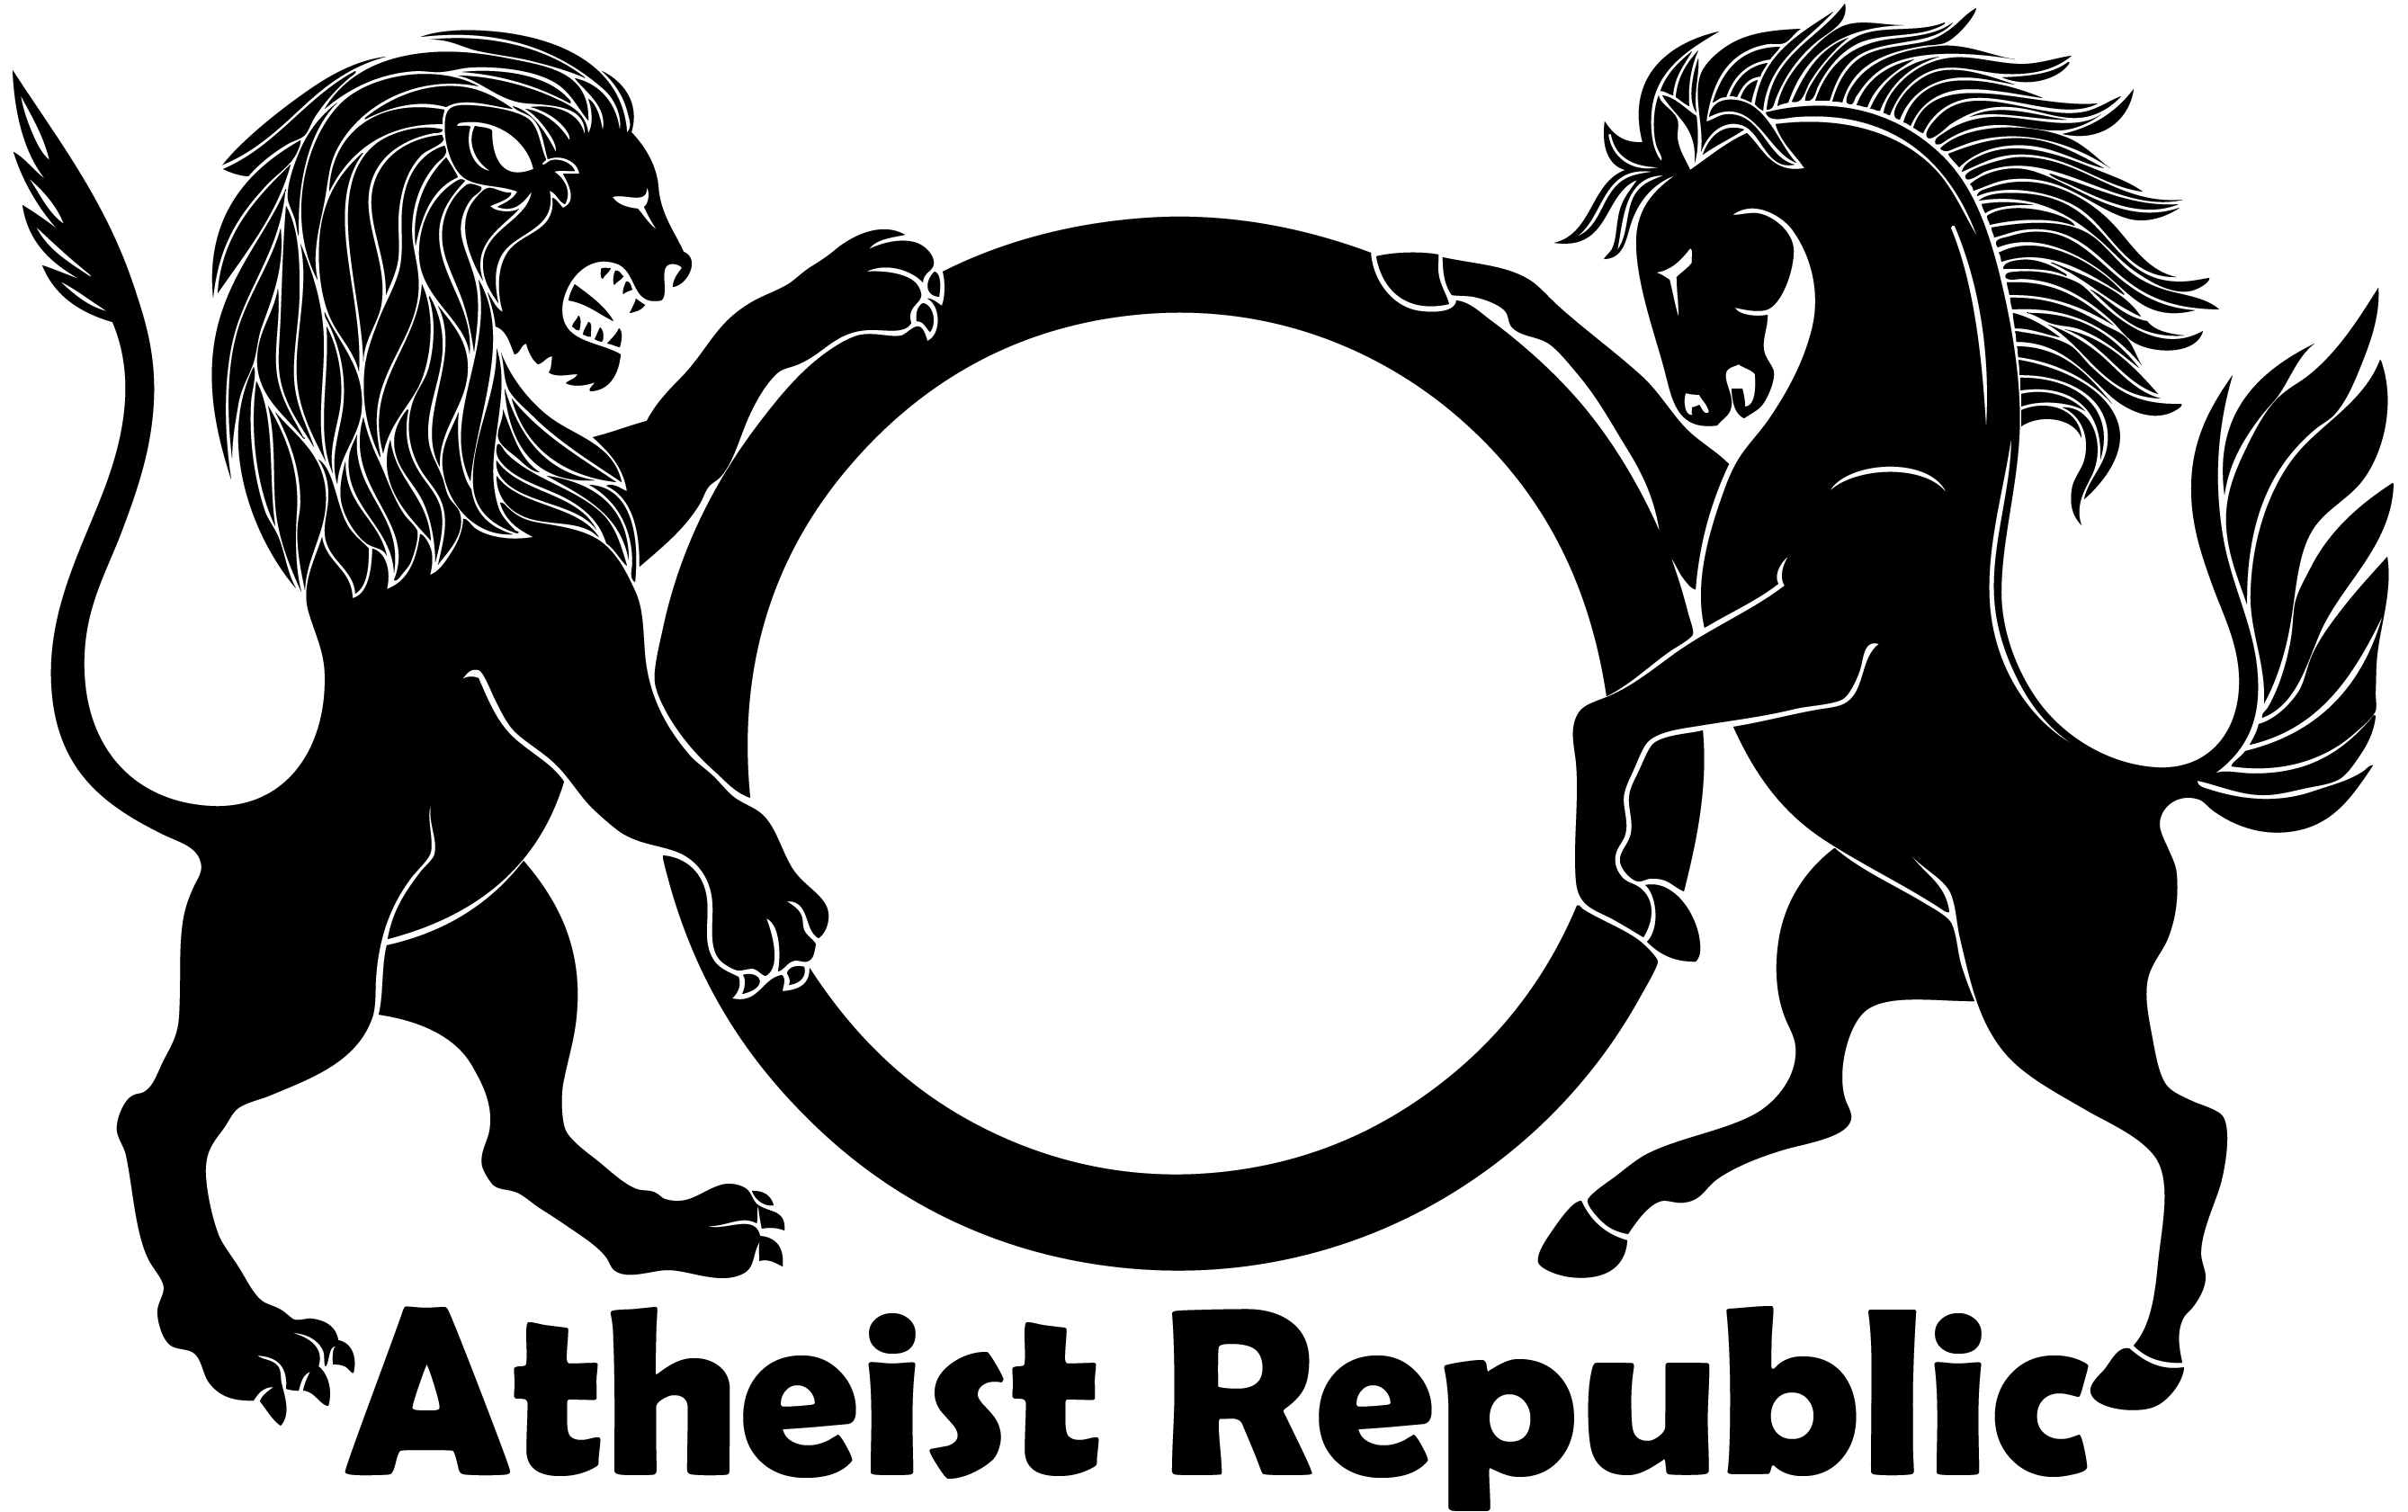 Atheist republic symbol biocorpaavc Image collections